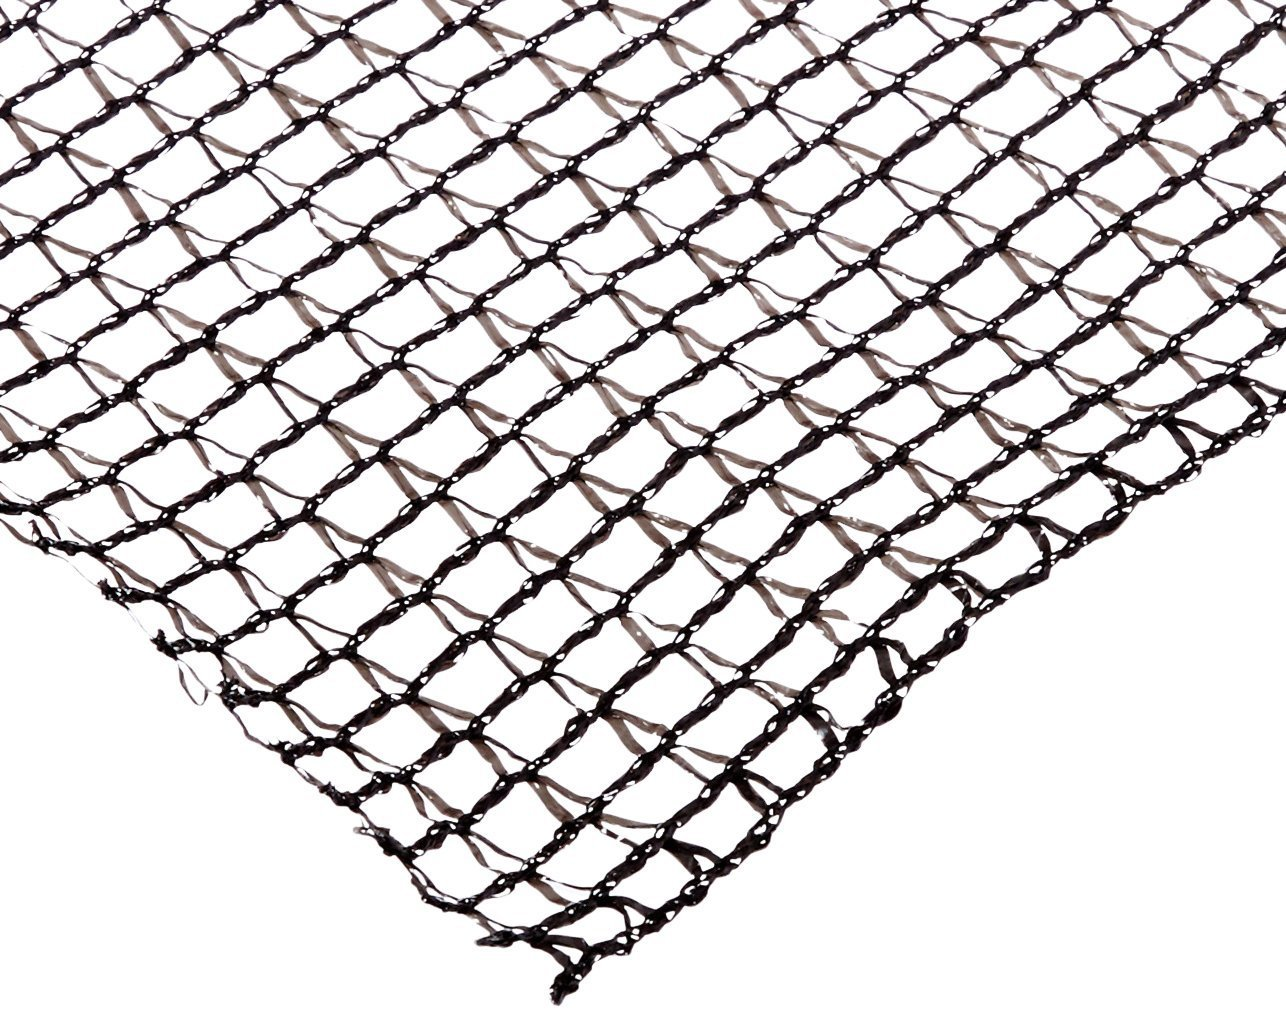 Deluxe Knitted Pond Net/netting- 10' X 12' Size for Koi Ponds & Water Gardens by DeWitt (Image #1)